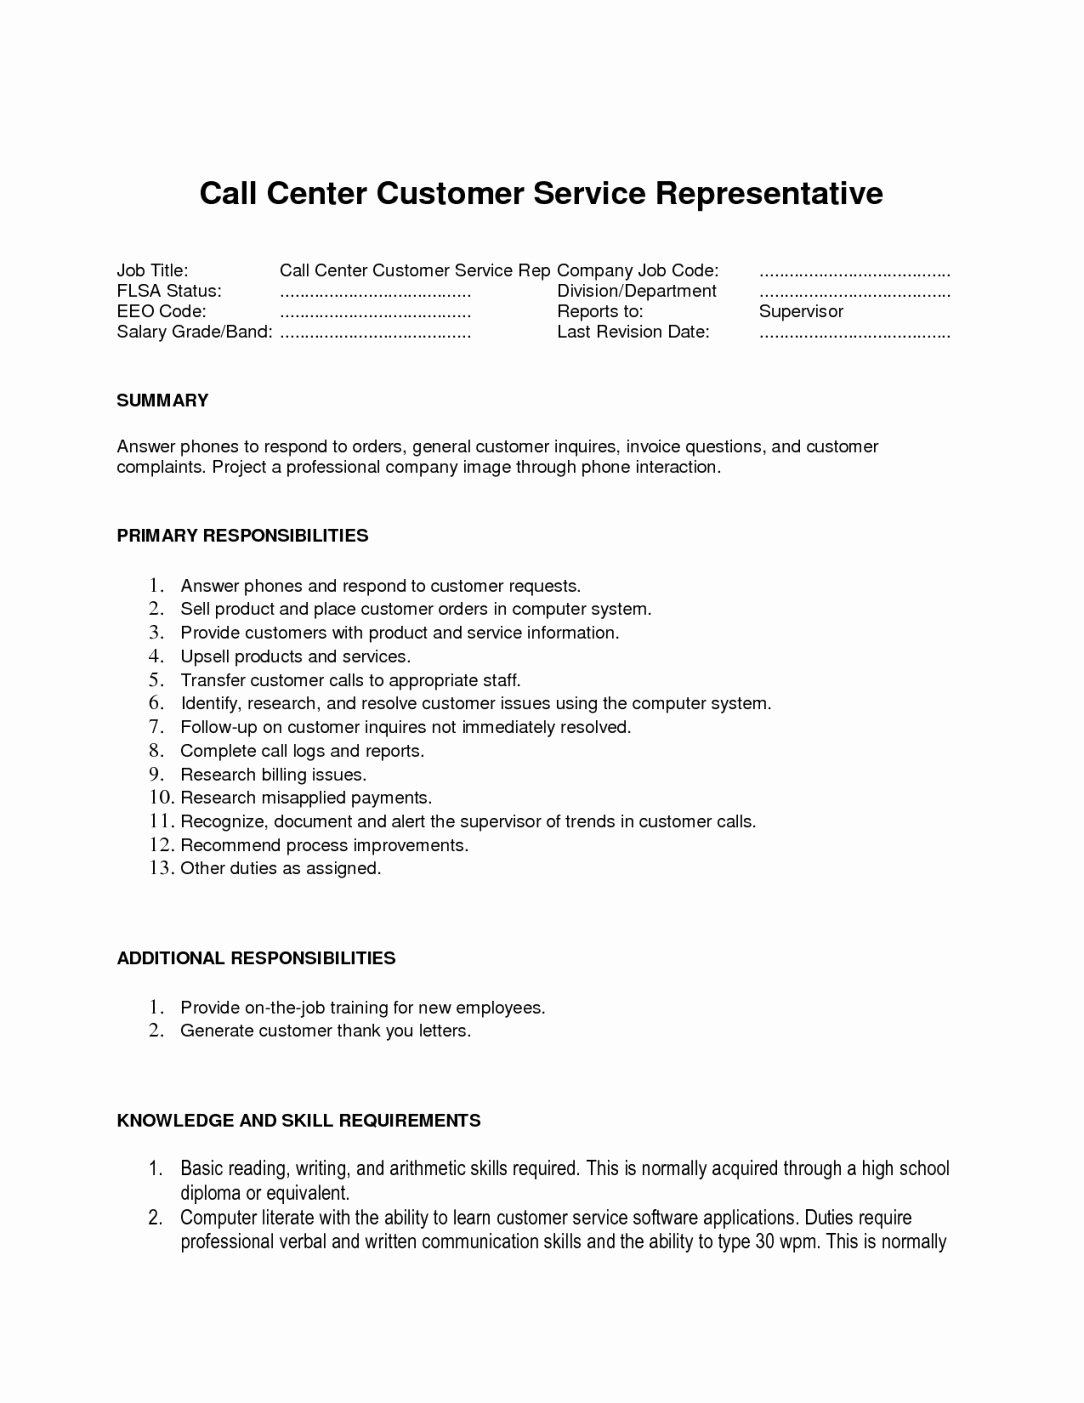 Resume Examples for Call Center Customer Service Skills